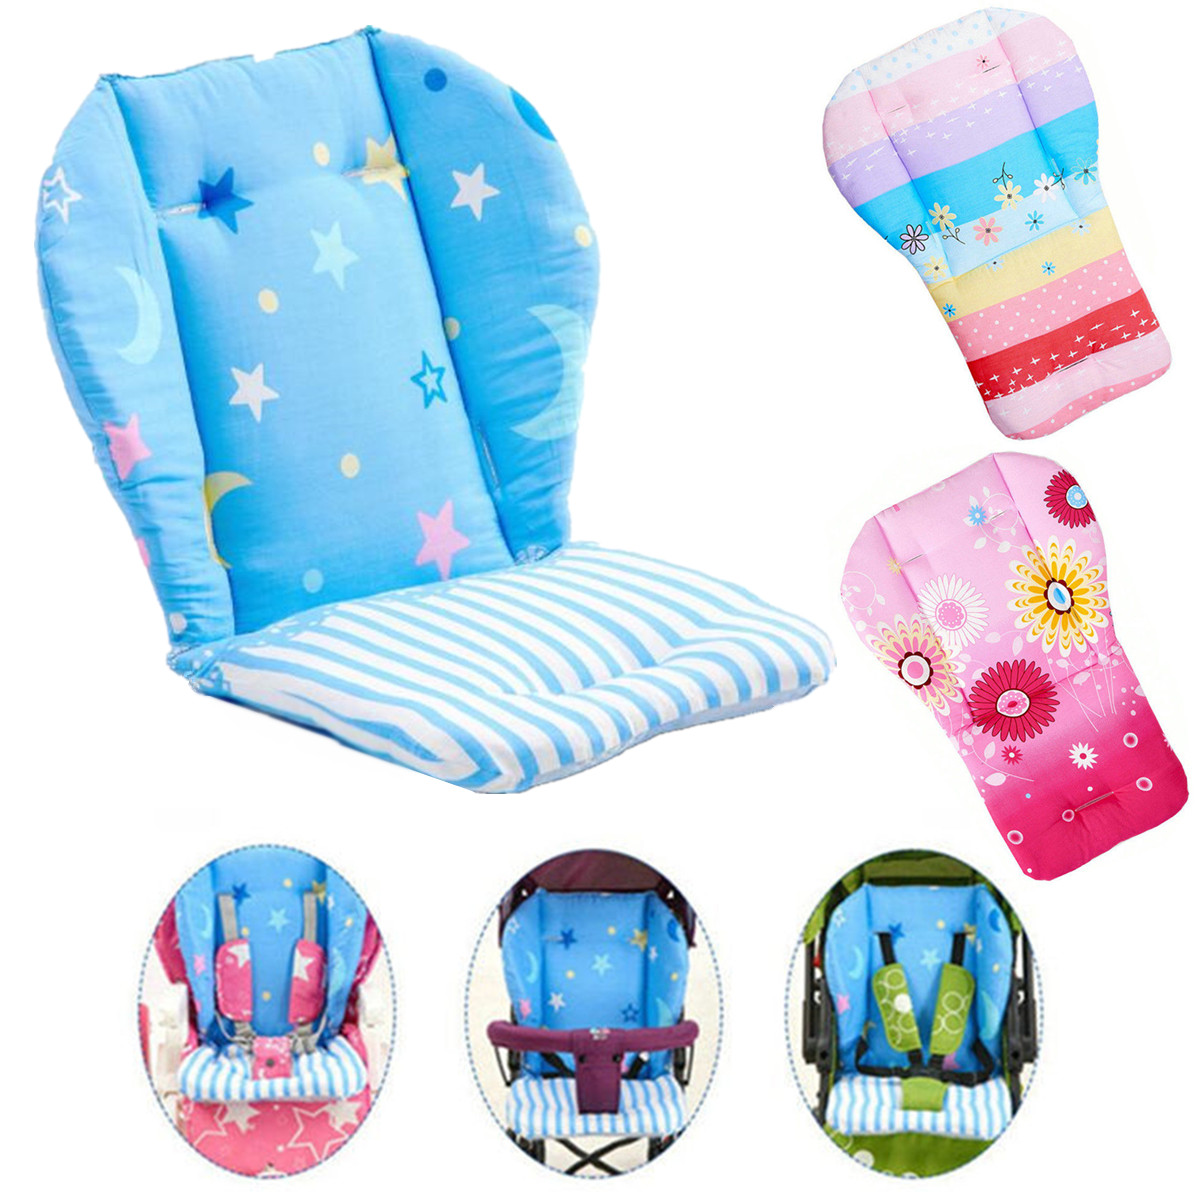 Cushion-Cover Booster-Mats Stroller Feeding-Chair Baby Kids Children Pads Pure-Cotton-Fabrics